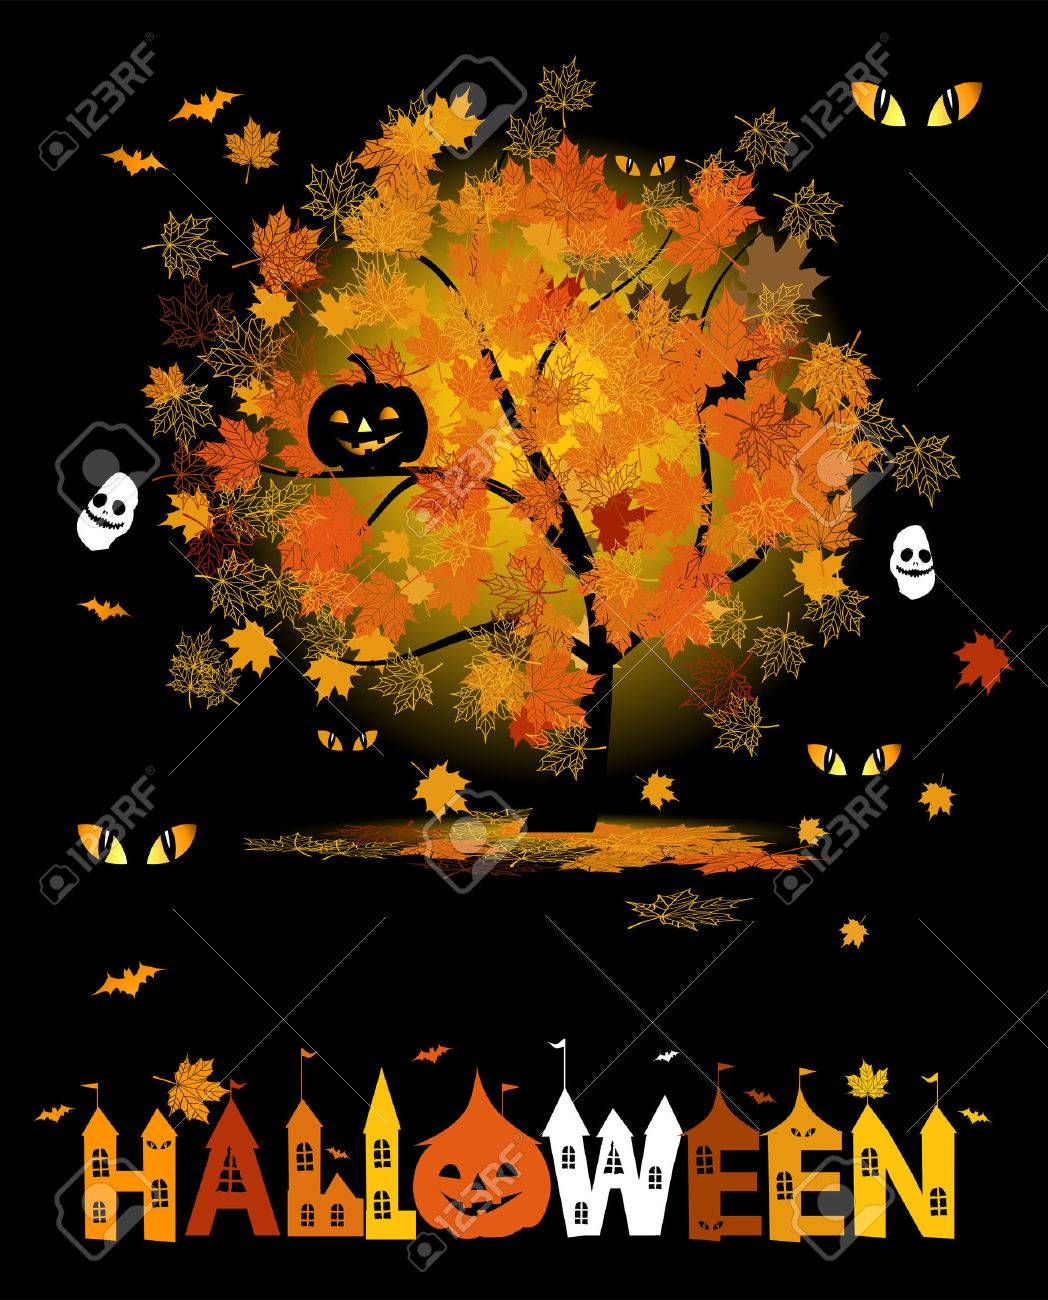 Halloween Party Background For Your Design Royalty Free Cliparts ...